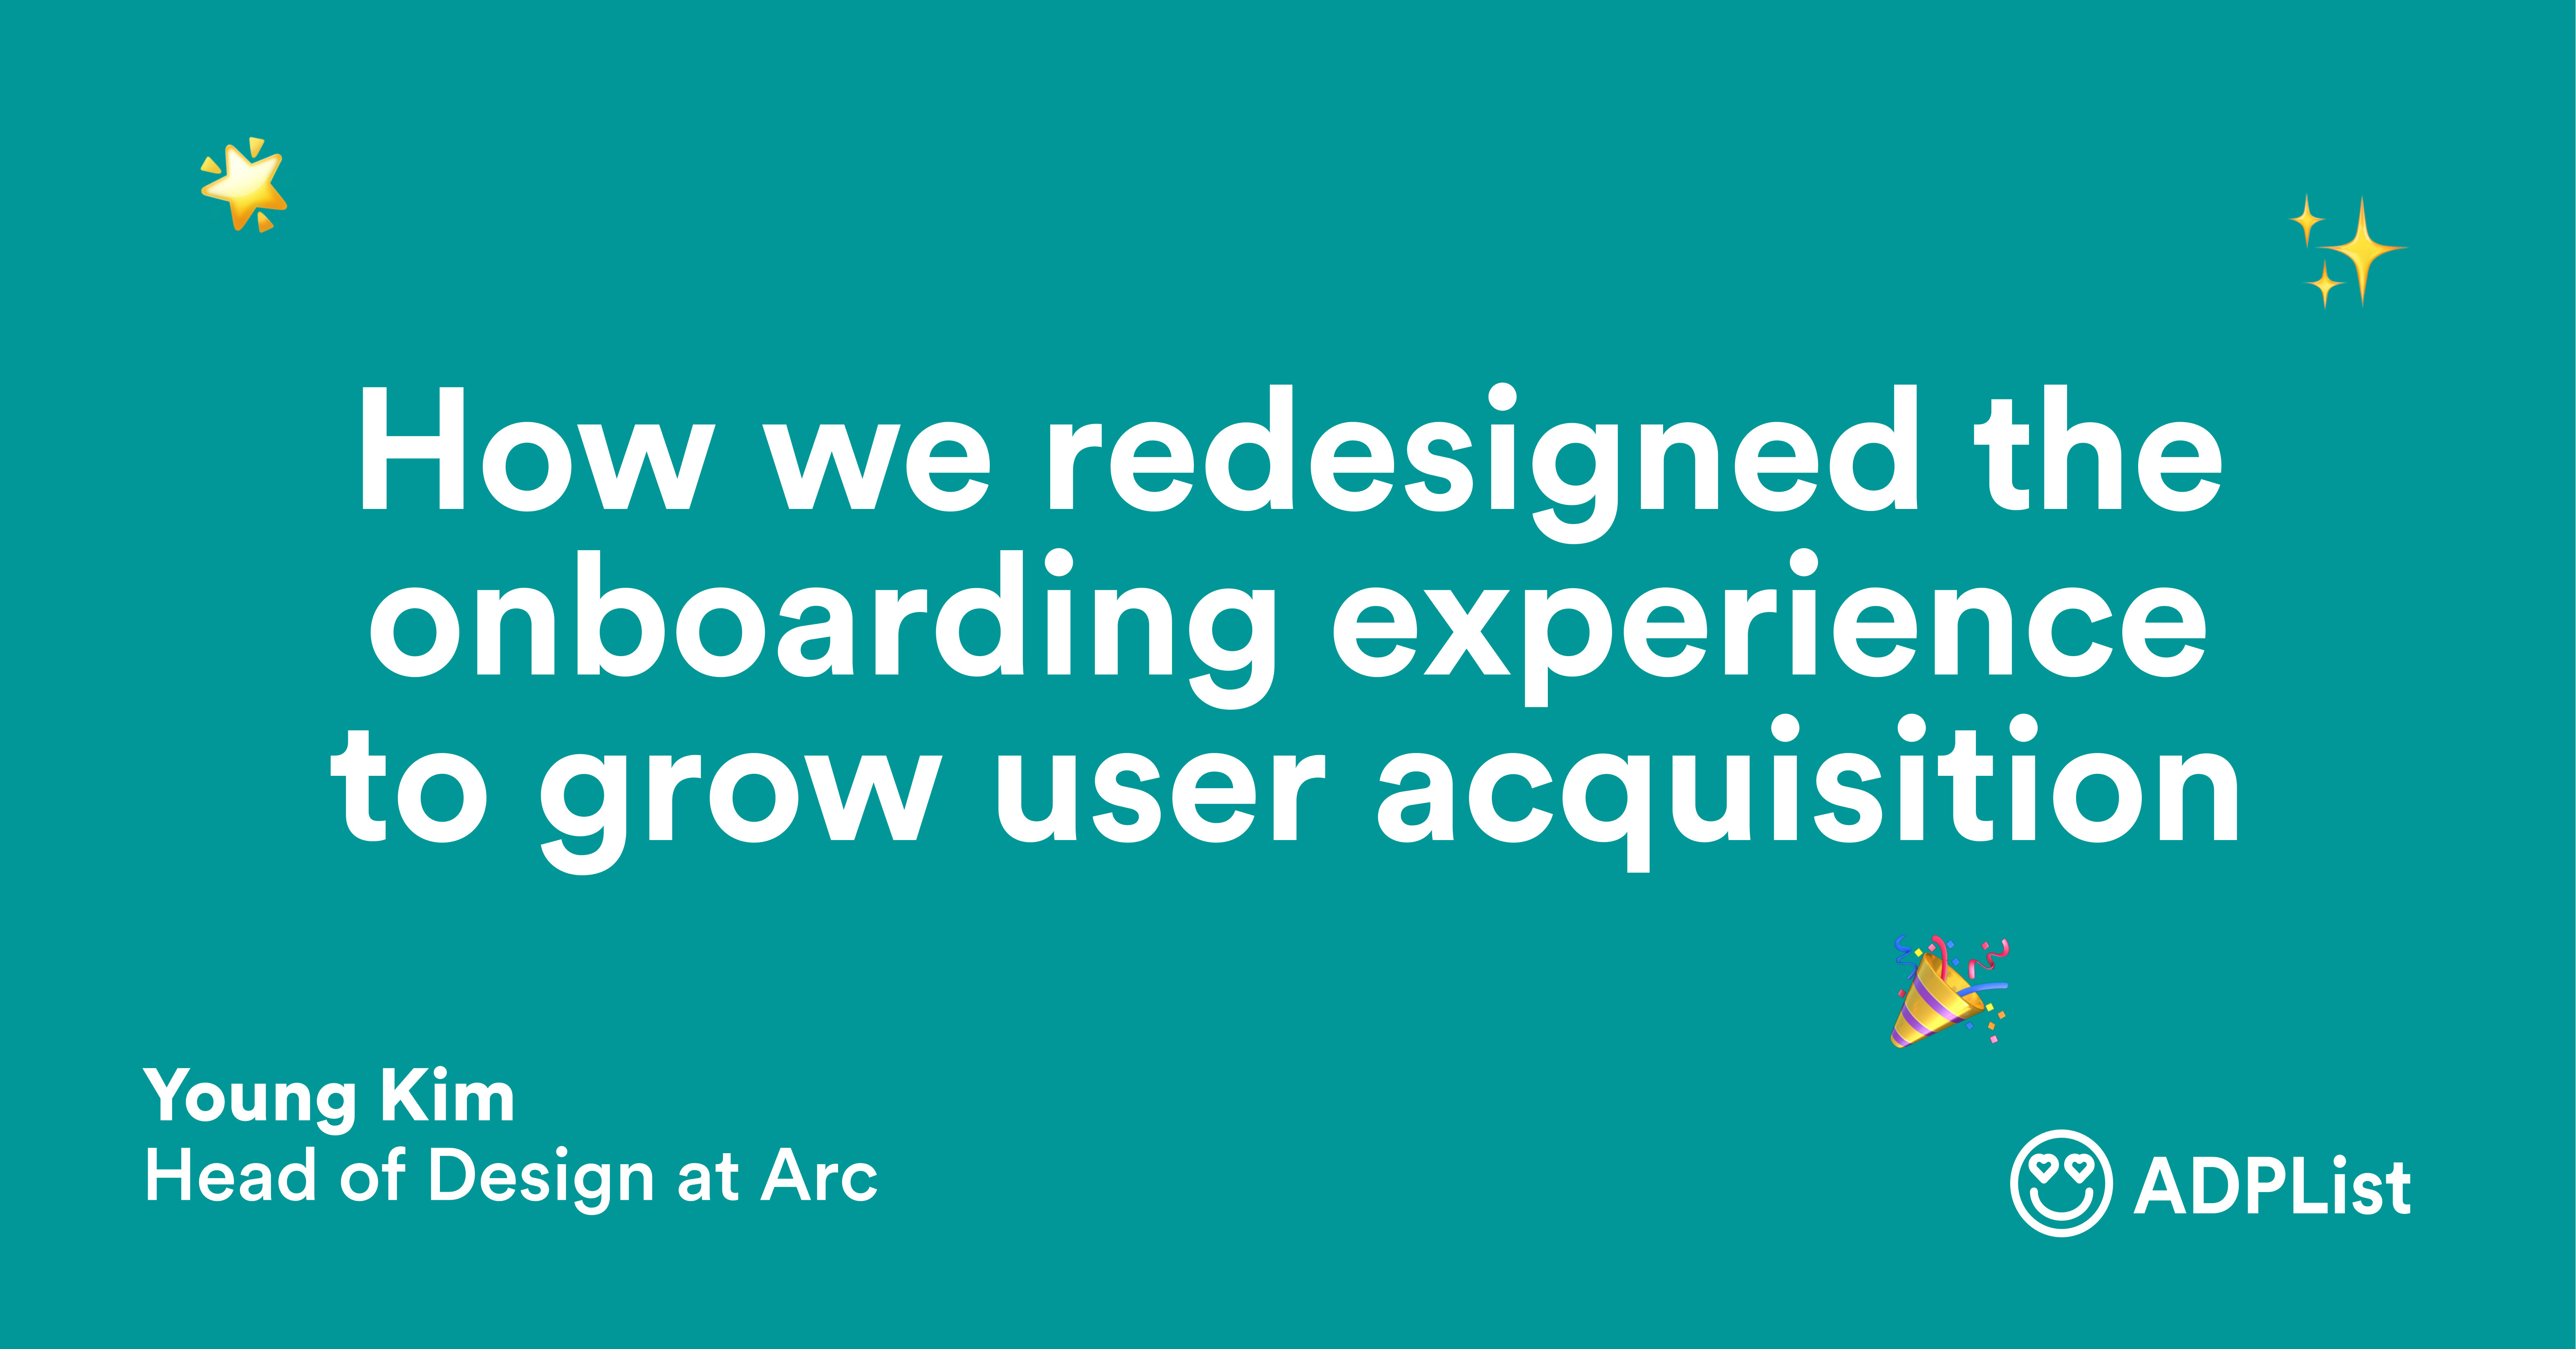 How we redesigned the onboarding experience to grow user acquisition